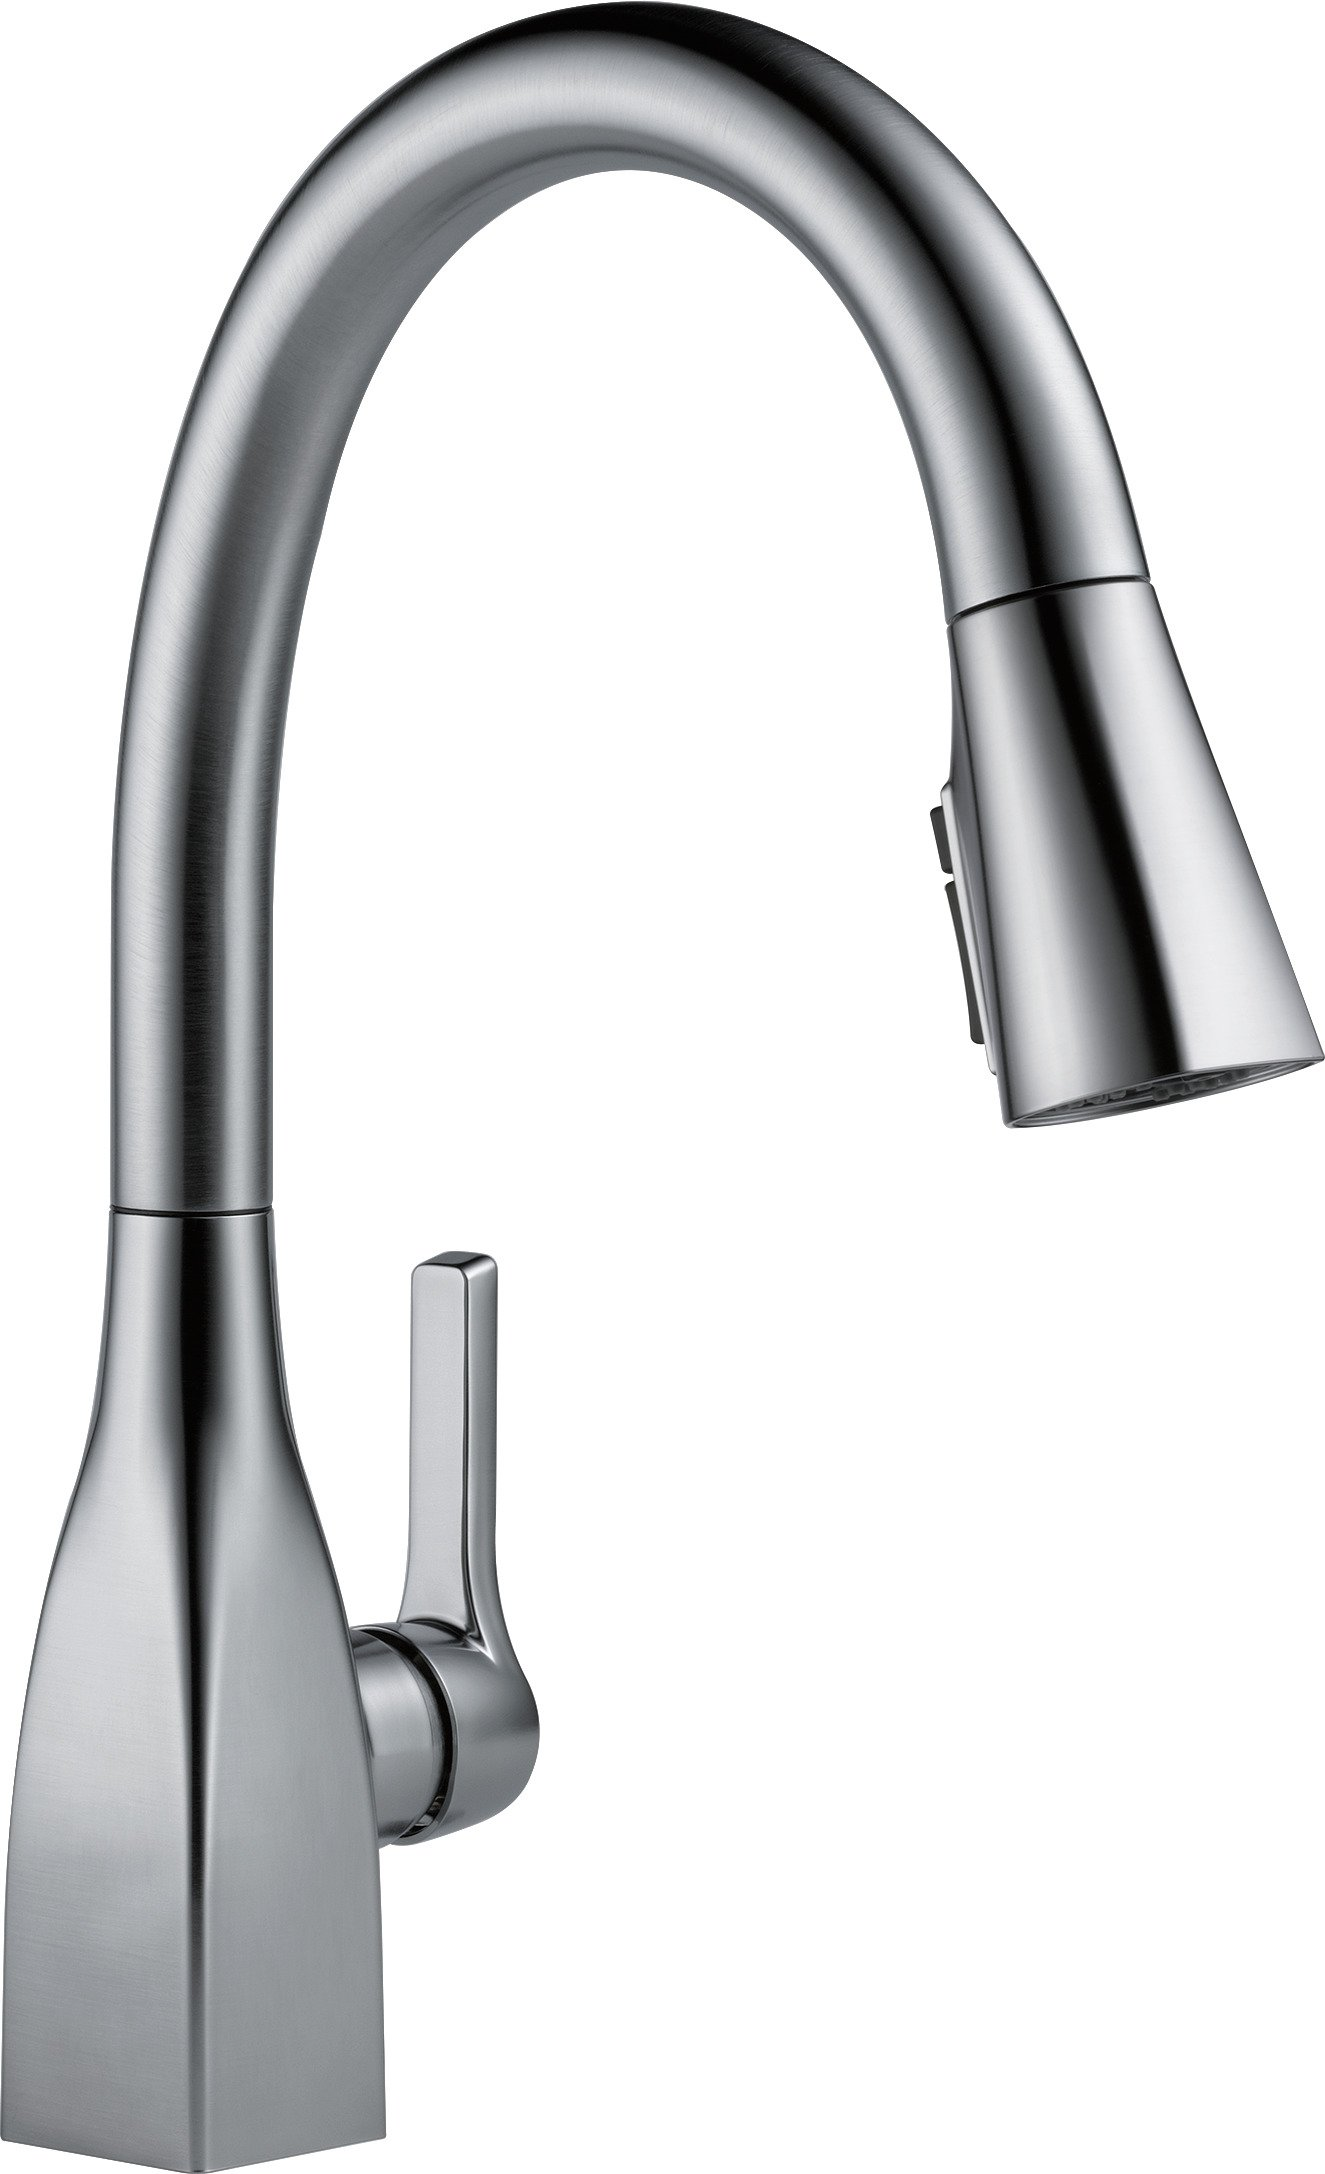 Delta 9183-AR-DST Mateo Single-Handle Pull-Down Kitchen Faucet with Magnetic Docking Spray Head, Arctic Stainless